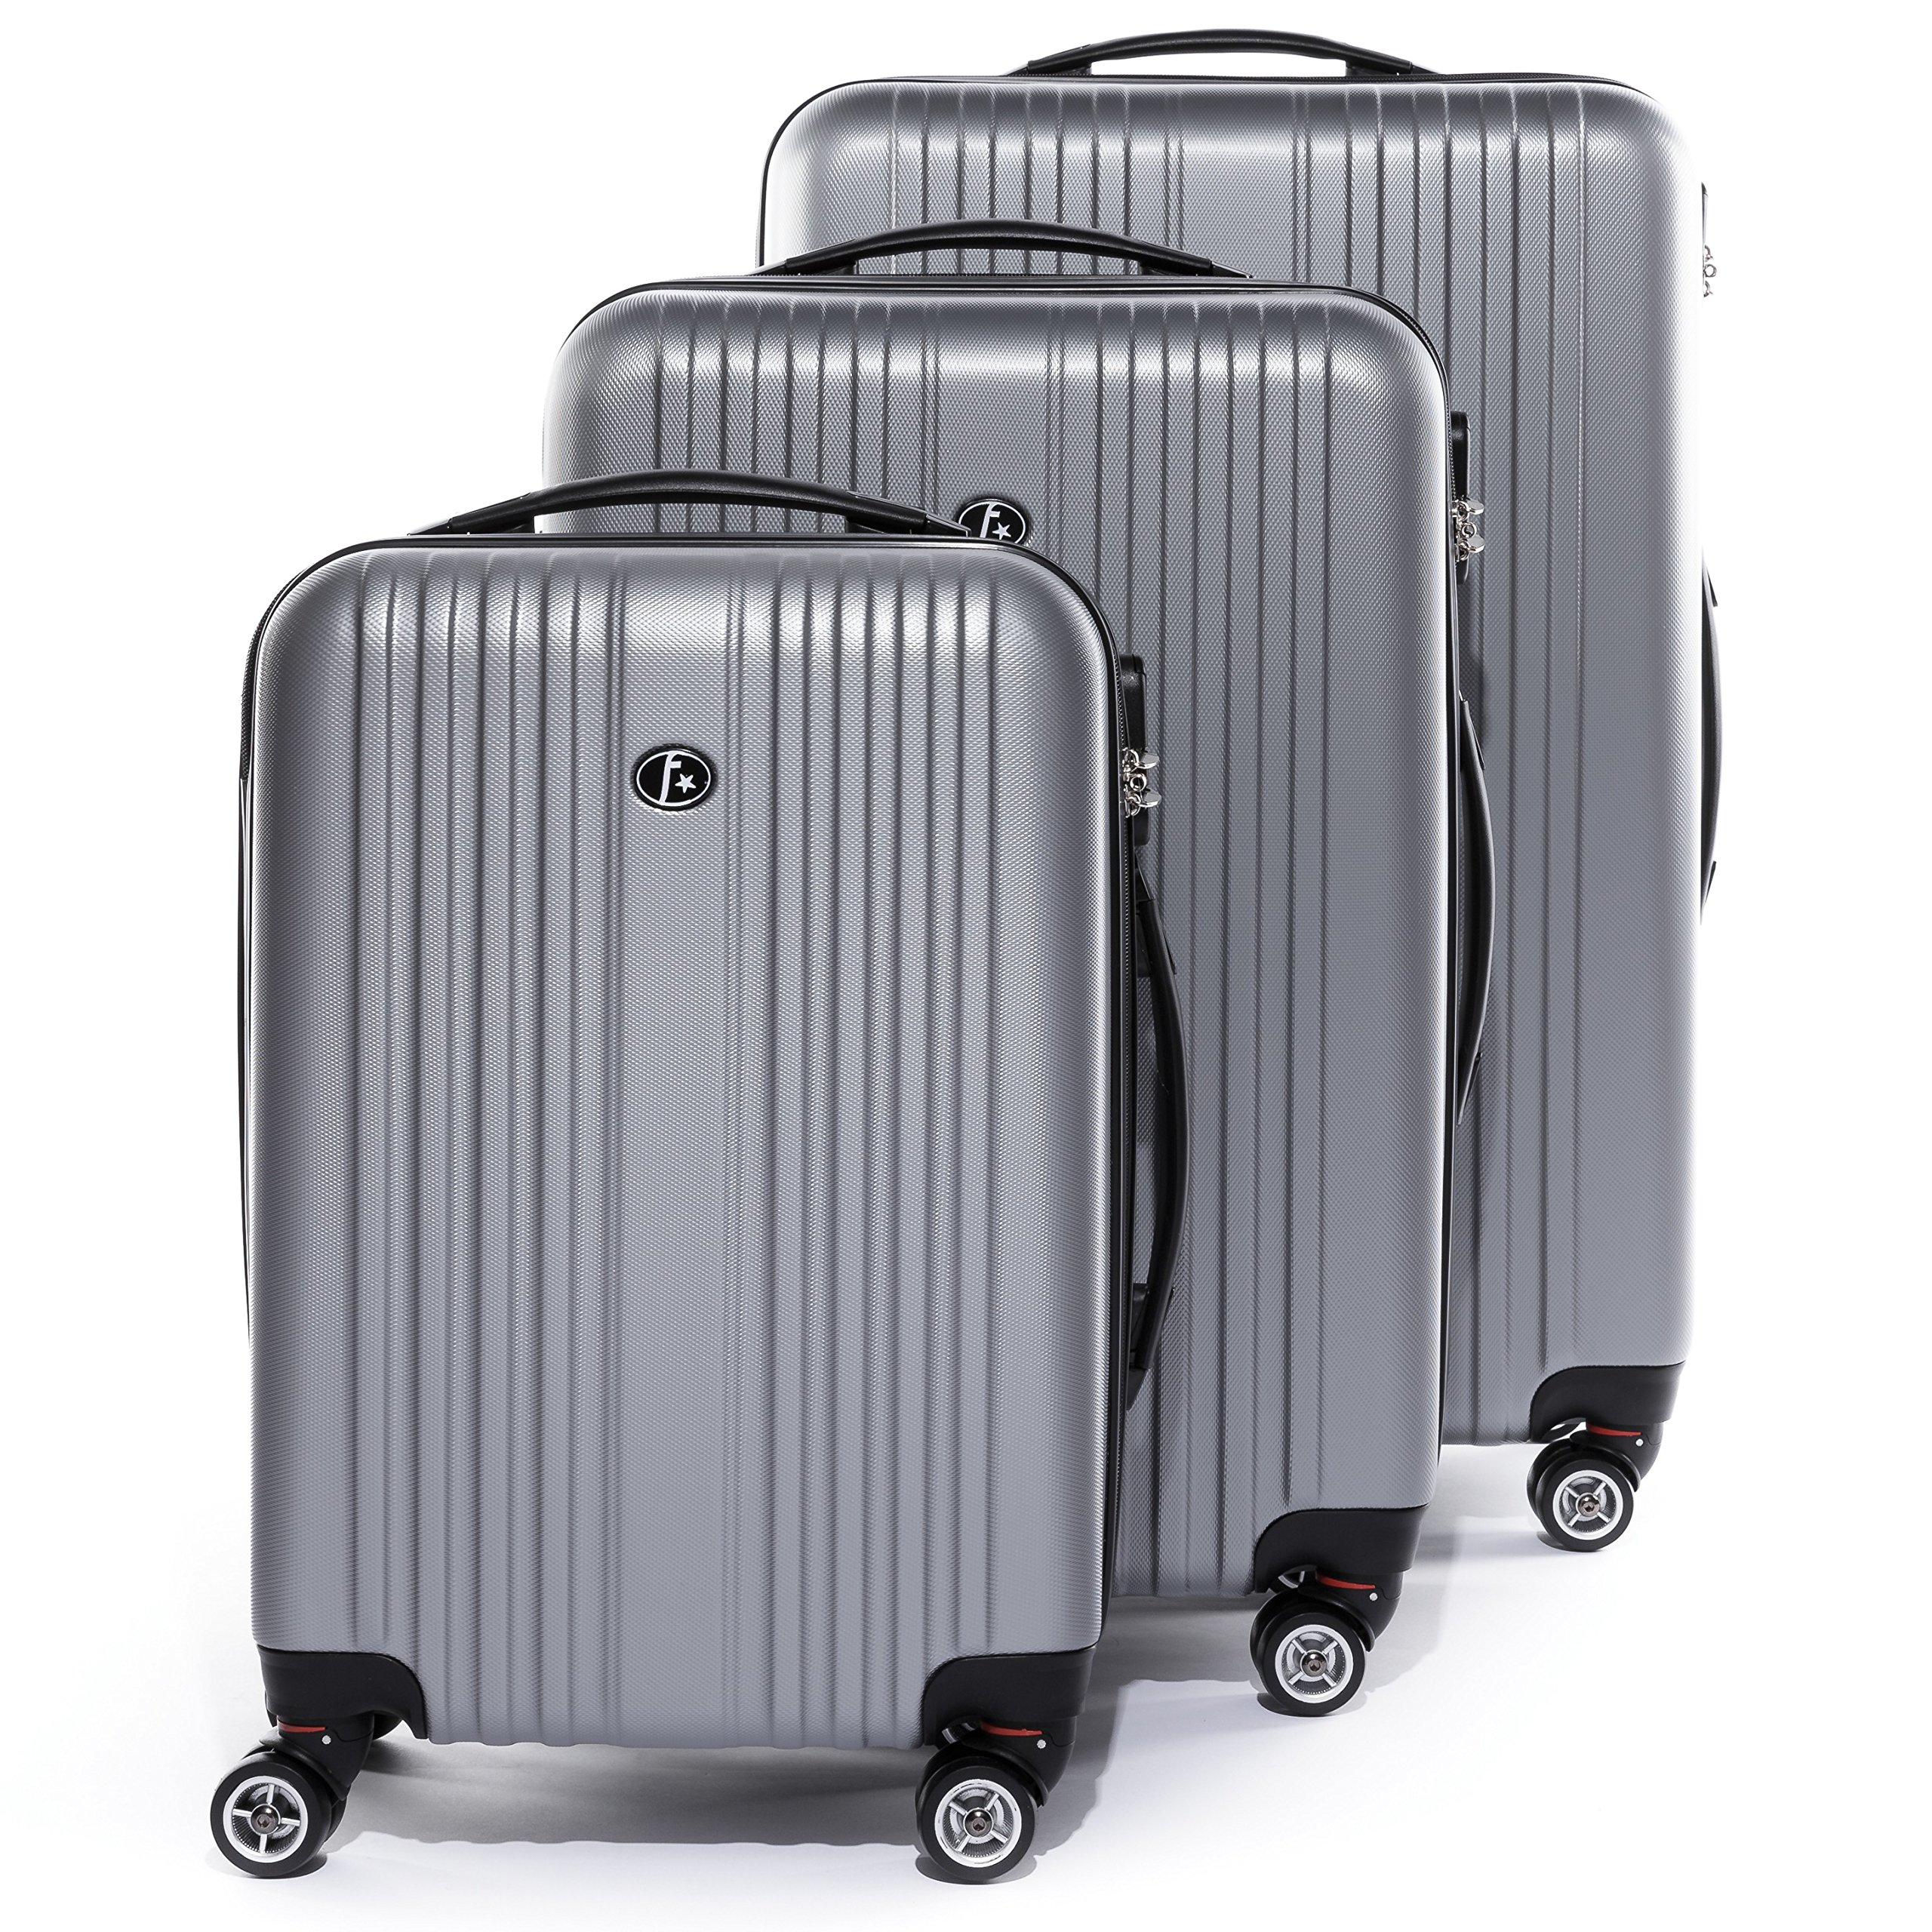 FERGÉ Trolley set - 3 suitcases hard-top cases TOULOUSE - three pcs hard-shell luggage with 4 wheels (360) - silver ABS by FERGÉ